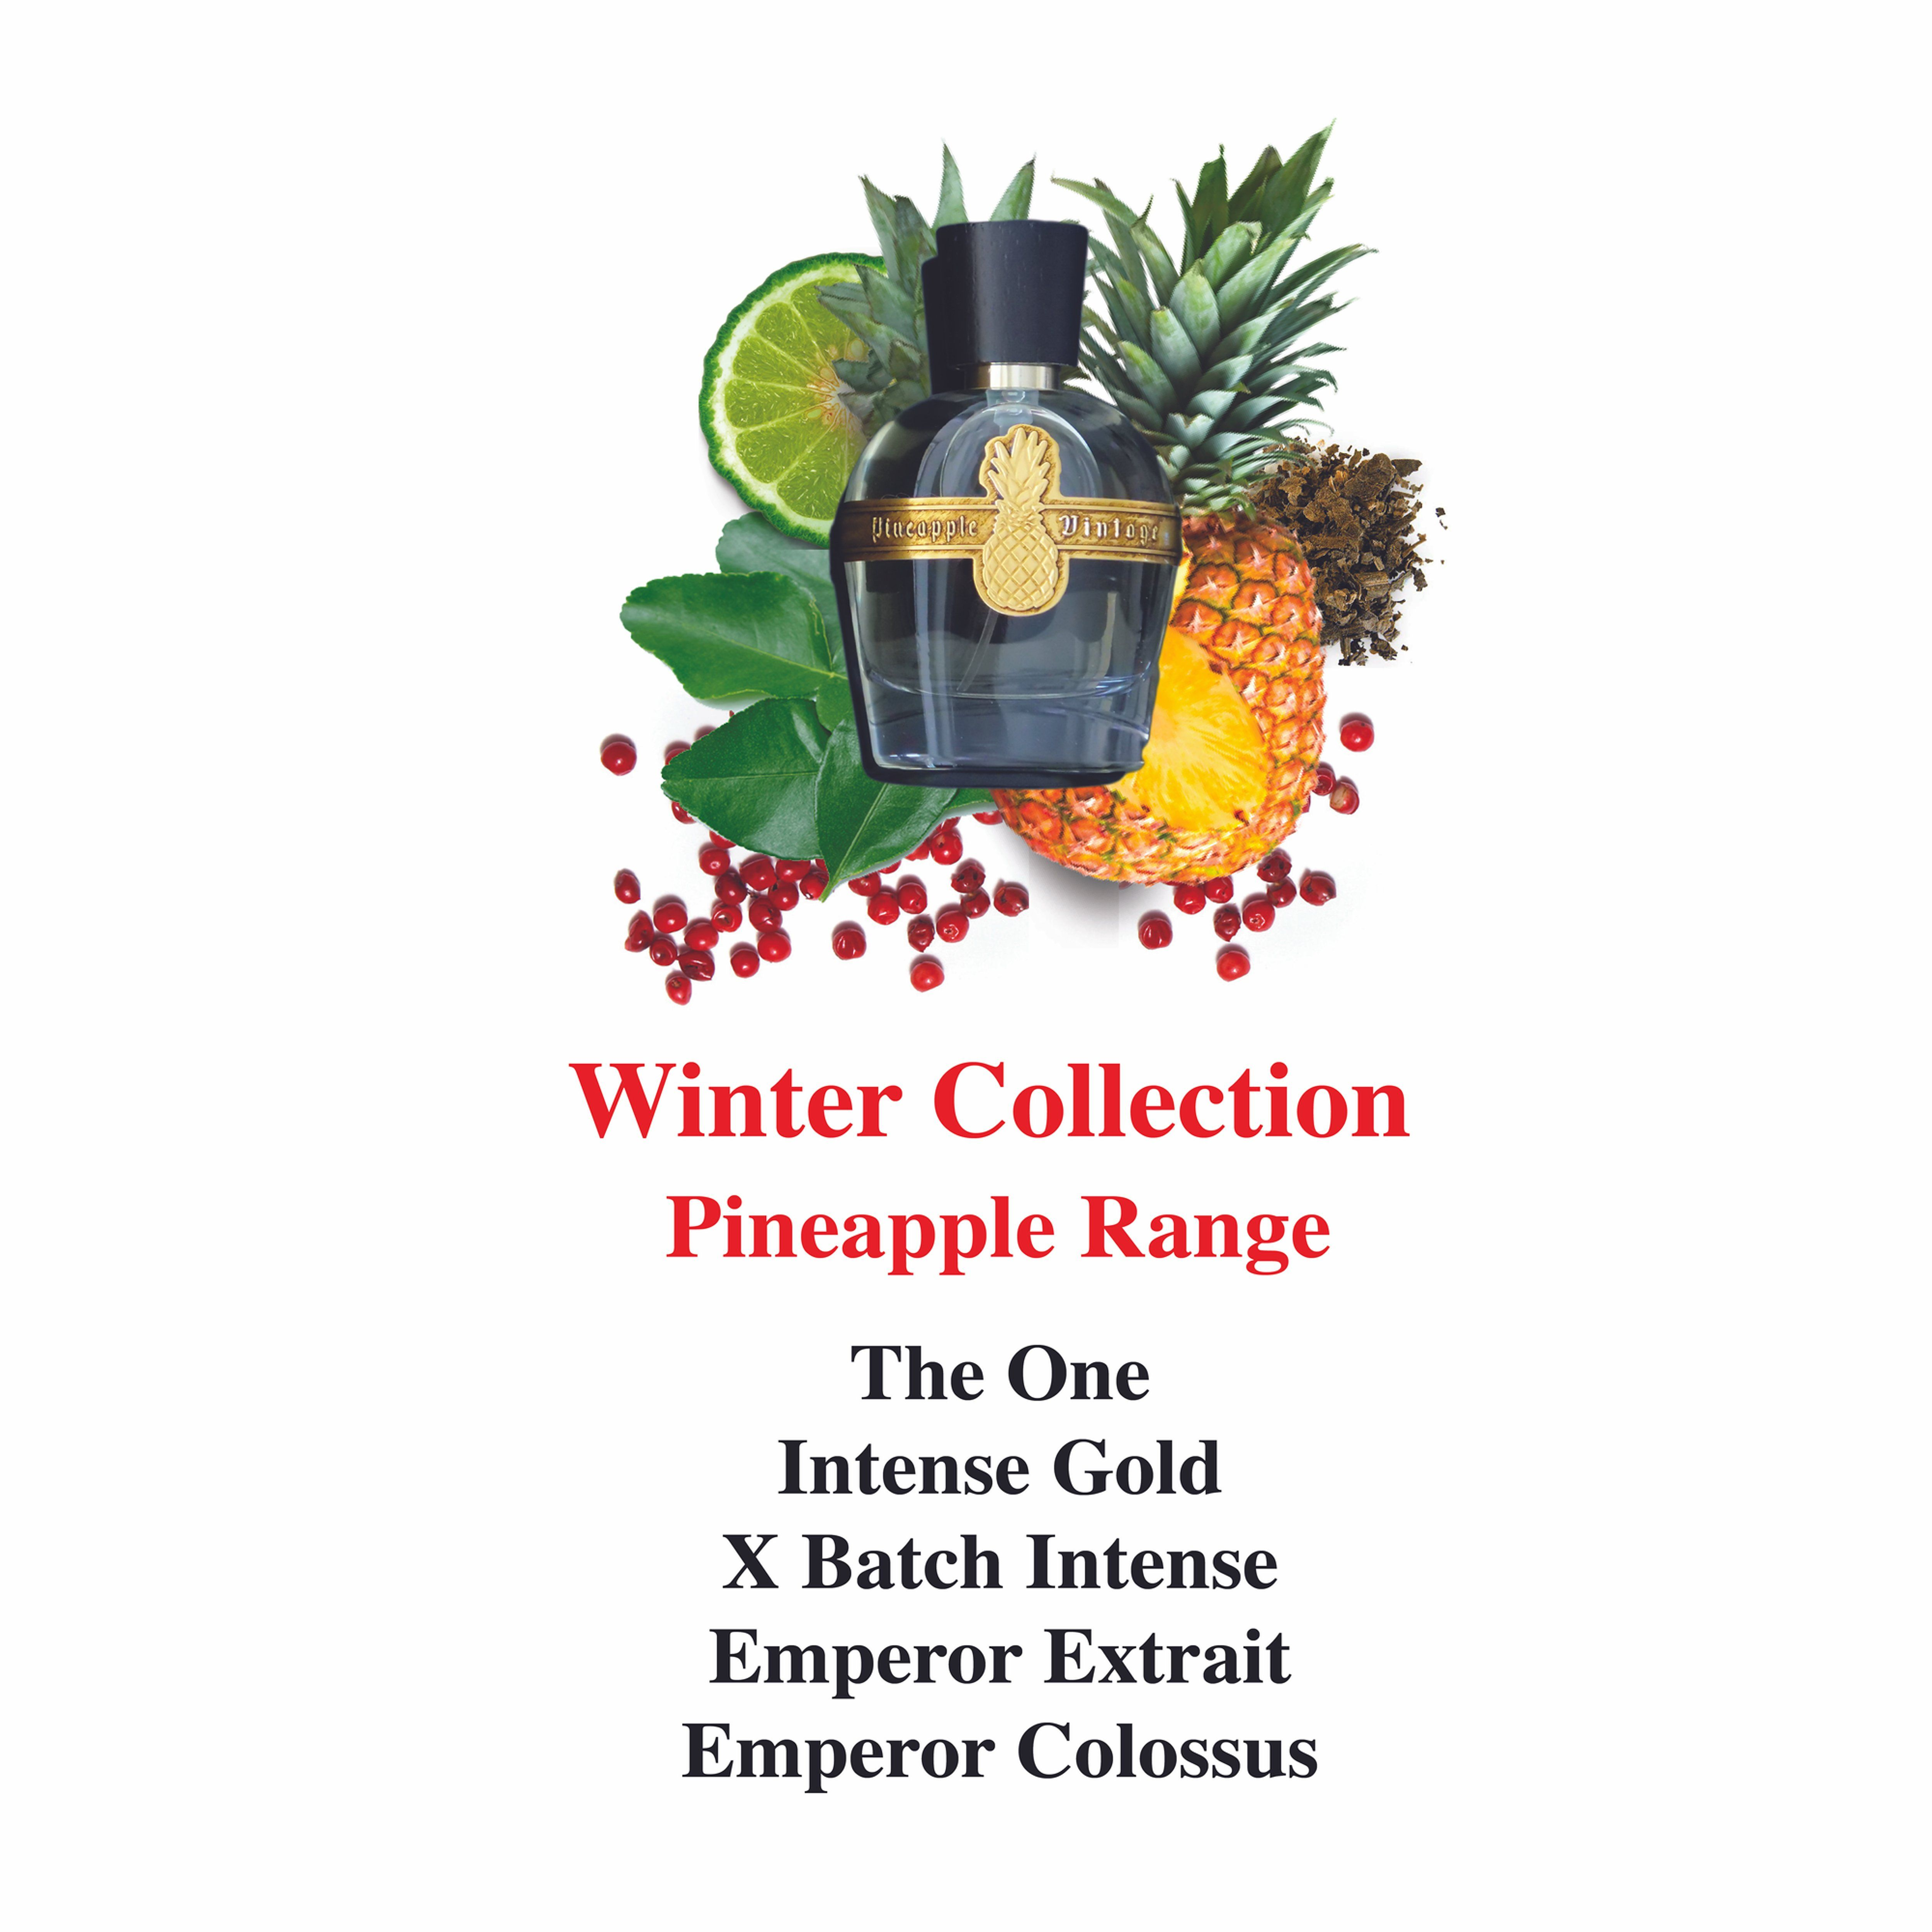 Set 1 Winter Collection Pineapple Range Limited Edition Sample Sets Premium Fragrances Parfums Vintage Winter Collection Pineapple Vintage Fun To Be One